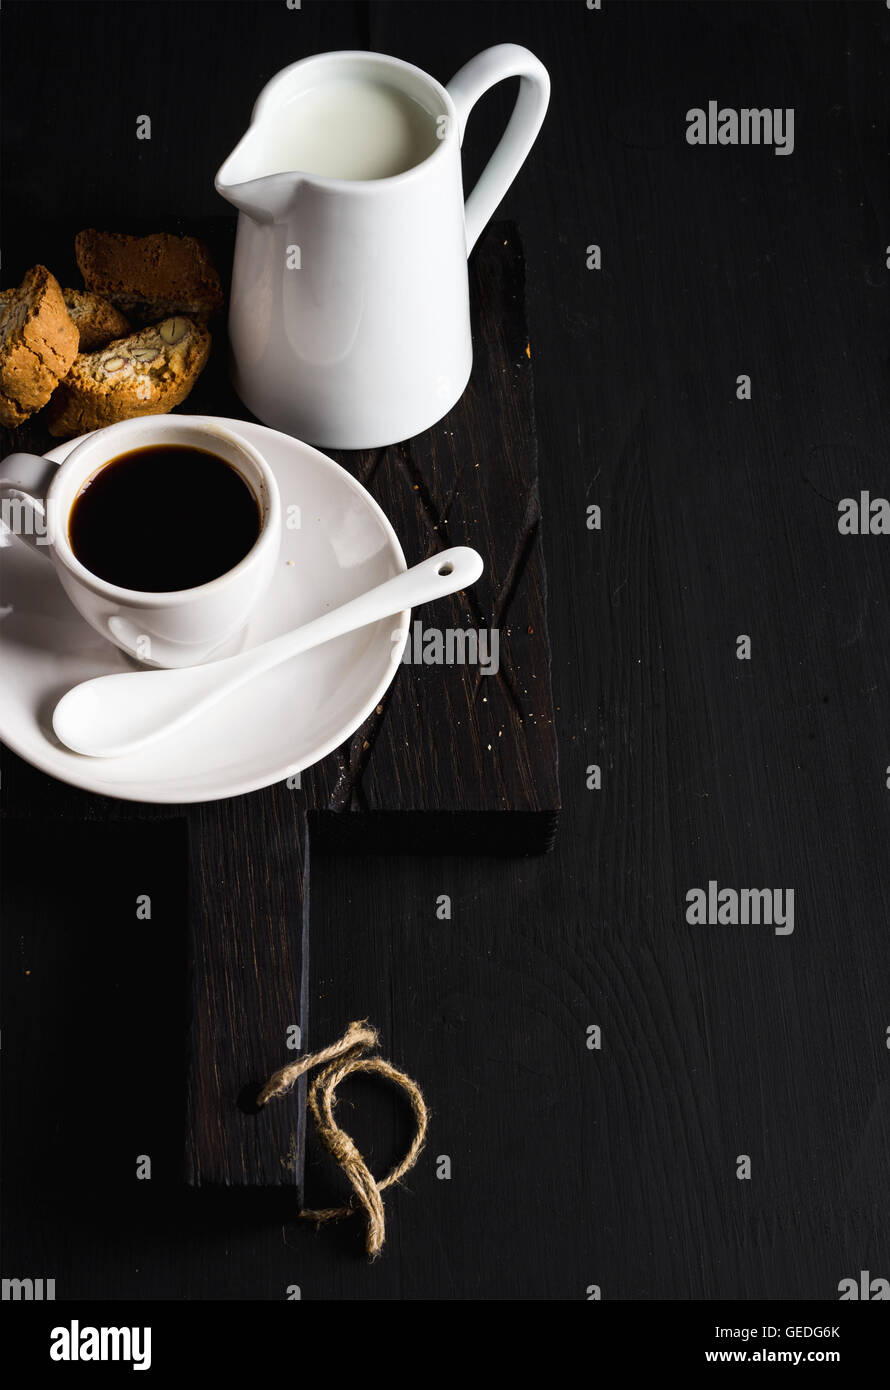 Cup of hot espresso, creamer with milk and cookies on dark rustic wooden board over black background, copy space - Stock Image